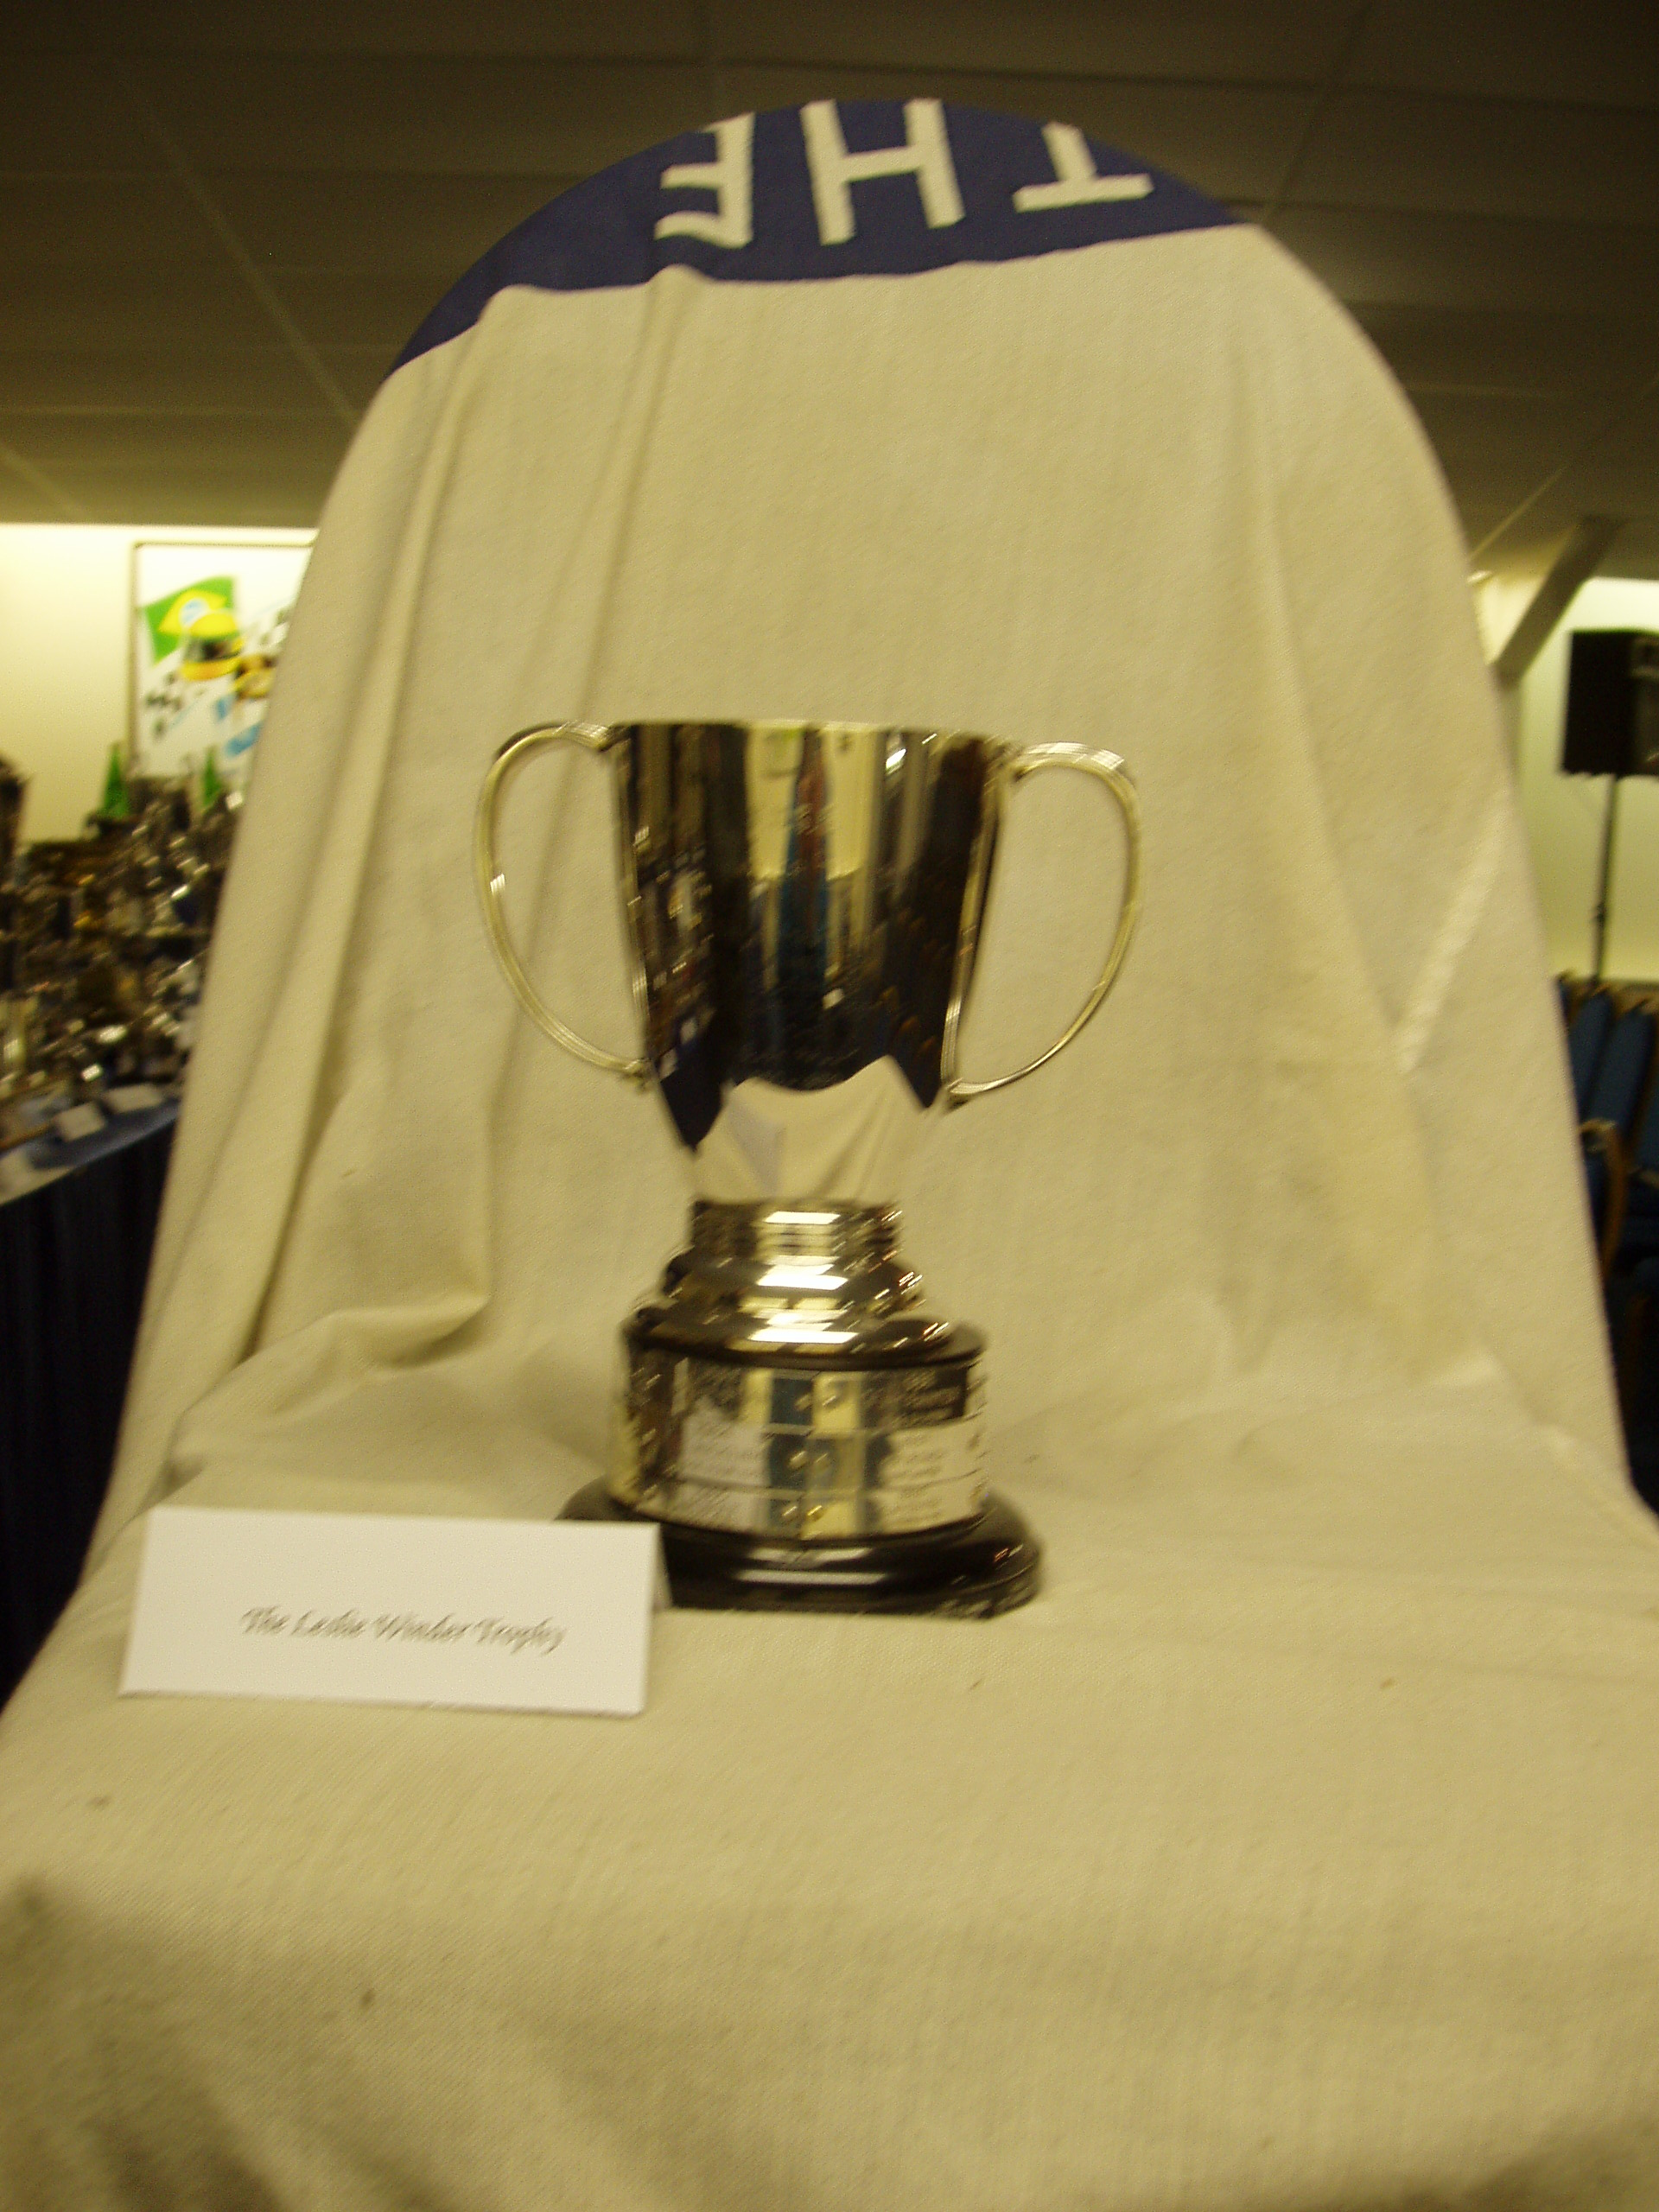 LESLIE WINDER TROPHY cover